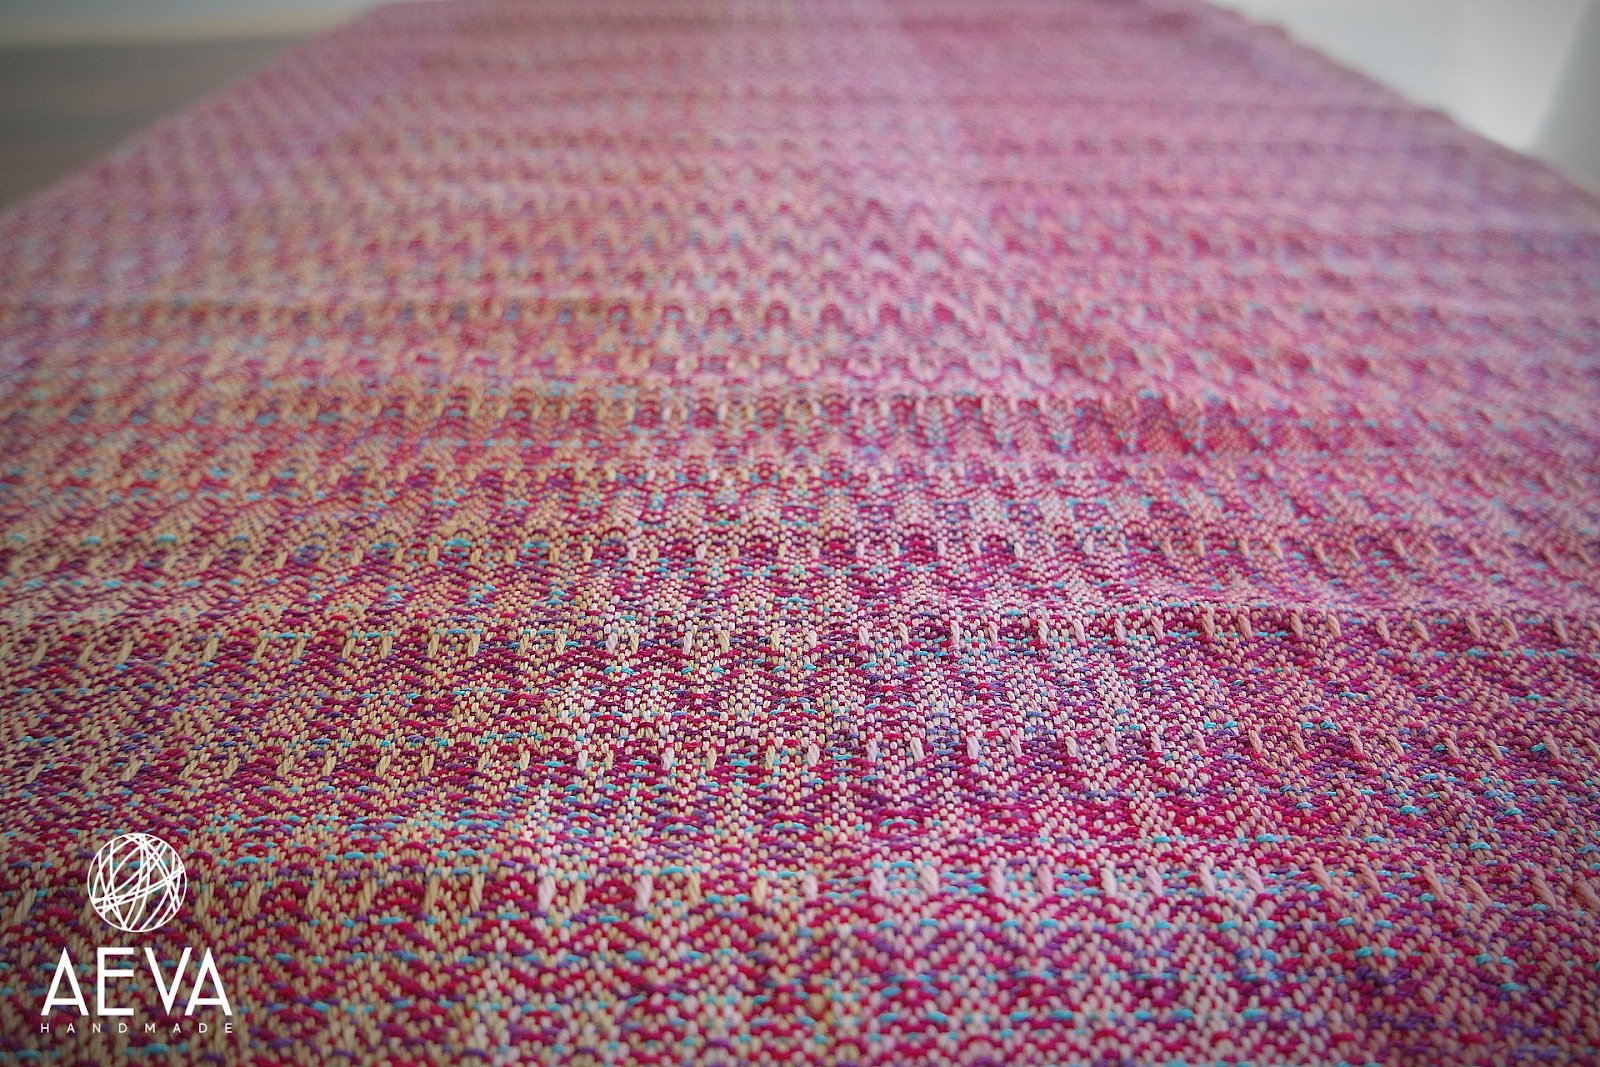 A close-up shot of the wrap lying flat on a table. The texture is highly visible, and creates a chevron effect. The mostly pink wrap takes up the whole image, and there are pops of different colours including purple, turquoise, and yellow